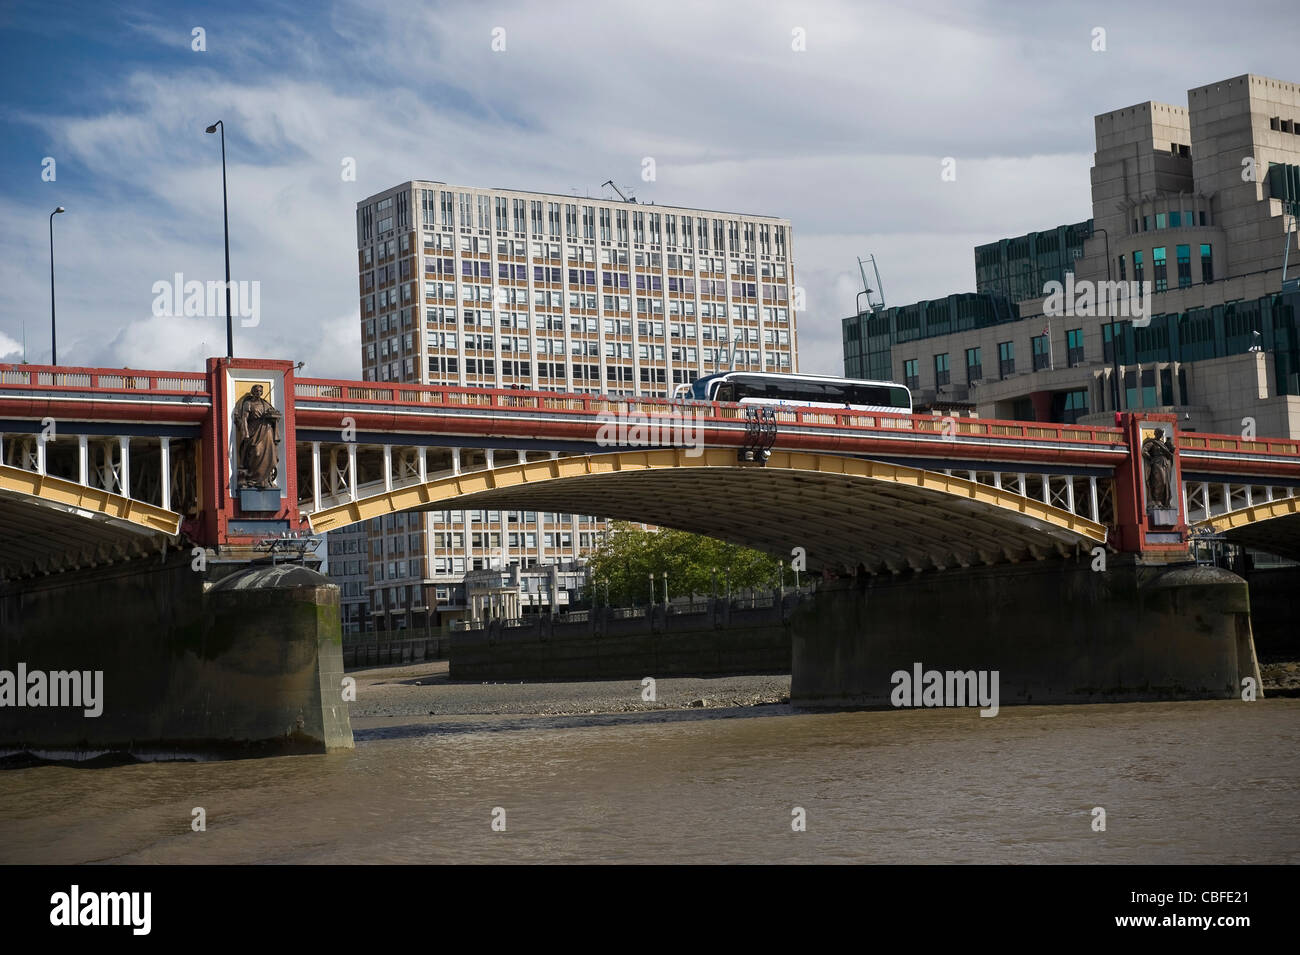 Vauxhall Bridge and the South Bank of the River Thames, London, UK - Stock Image